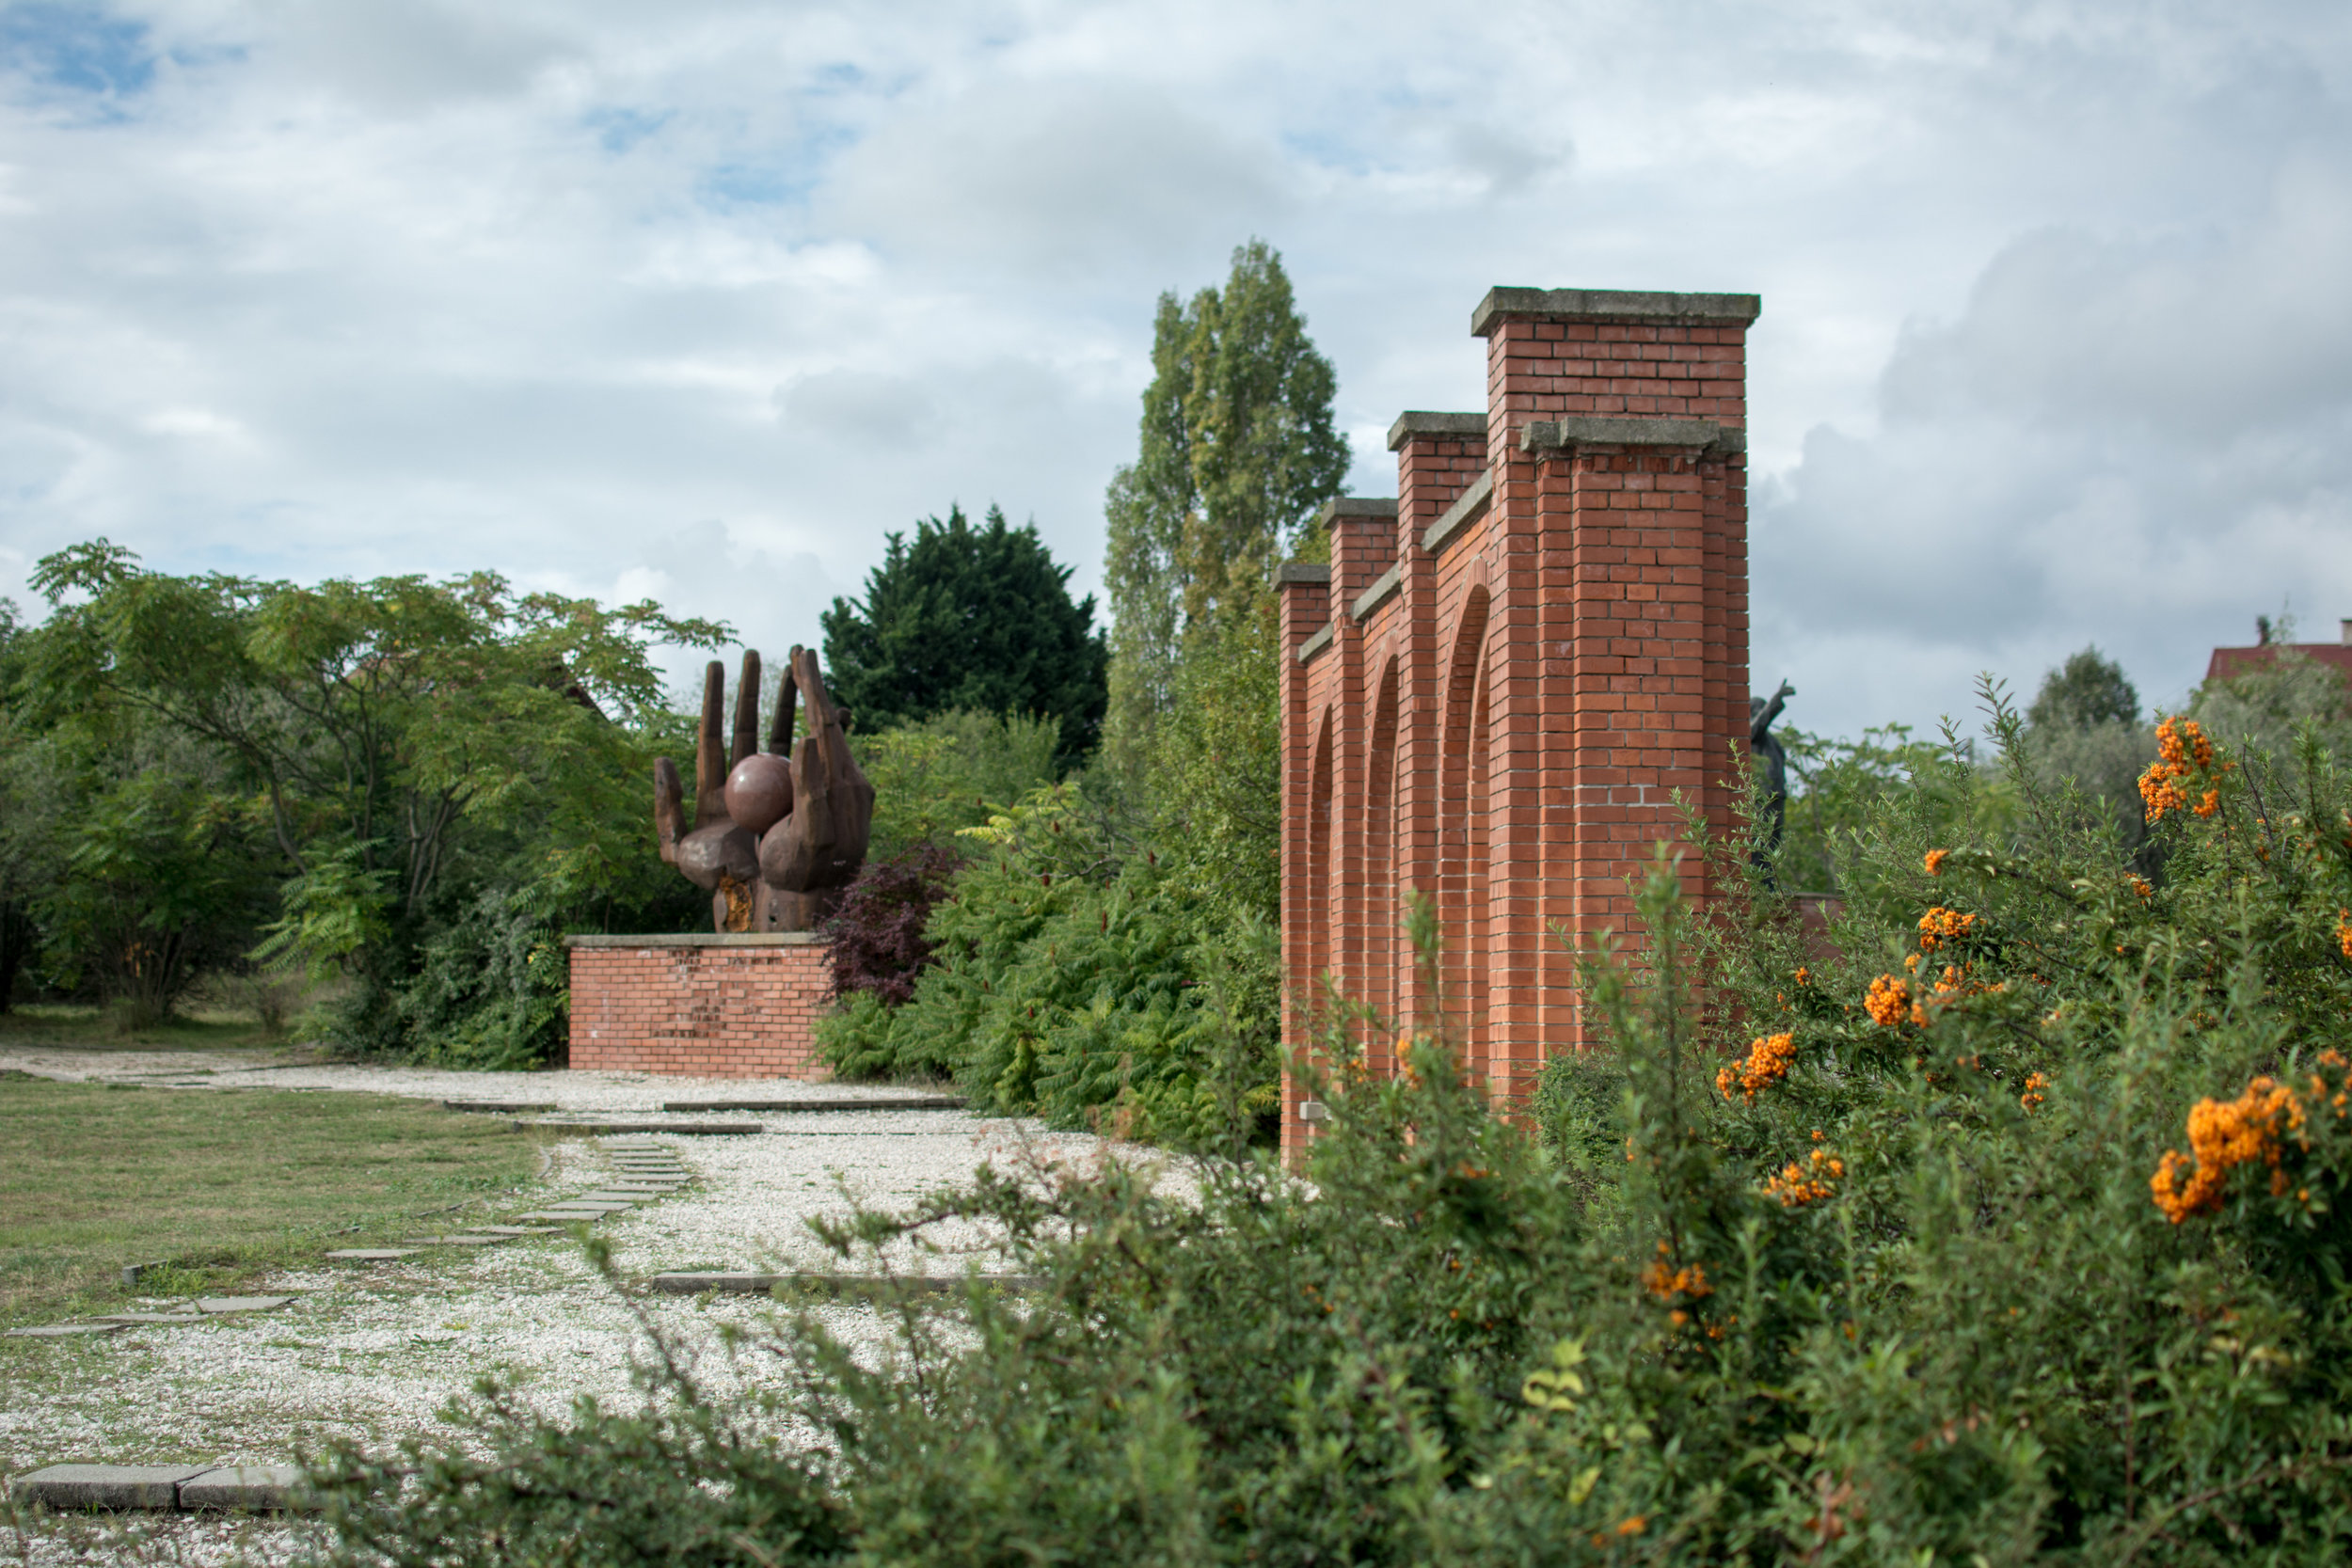 The Workers Movement Memorial